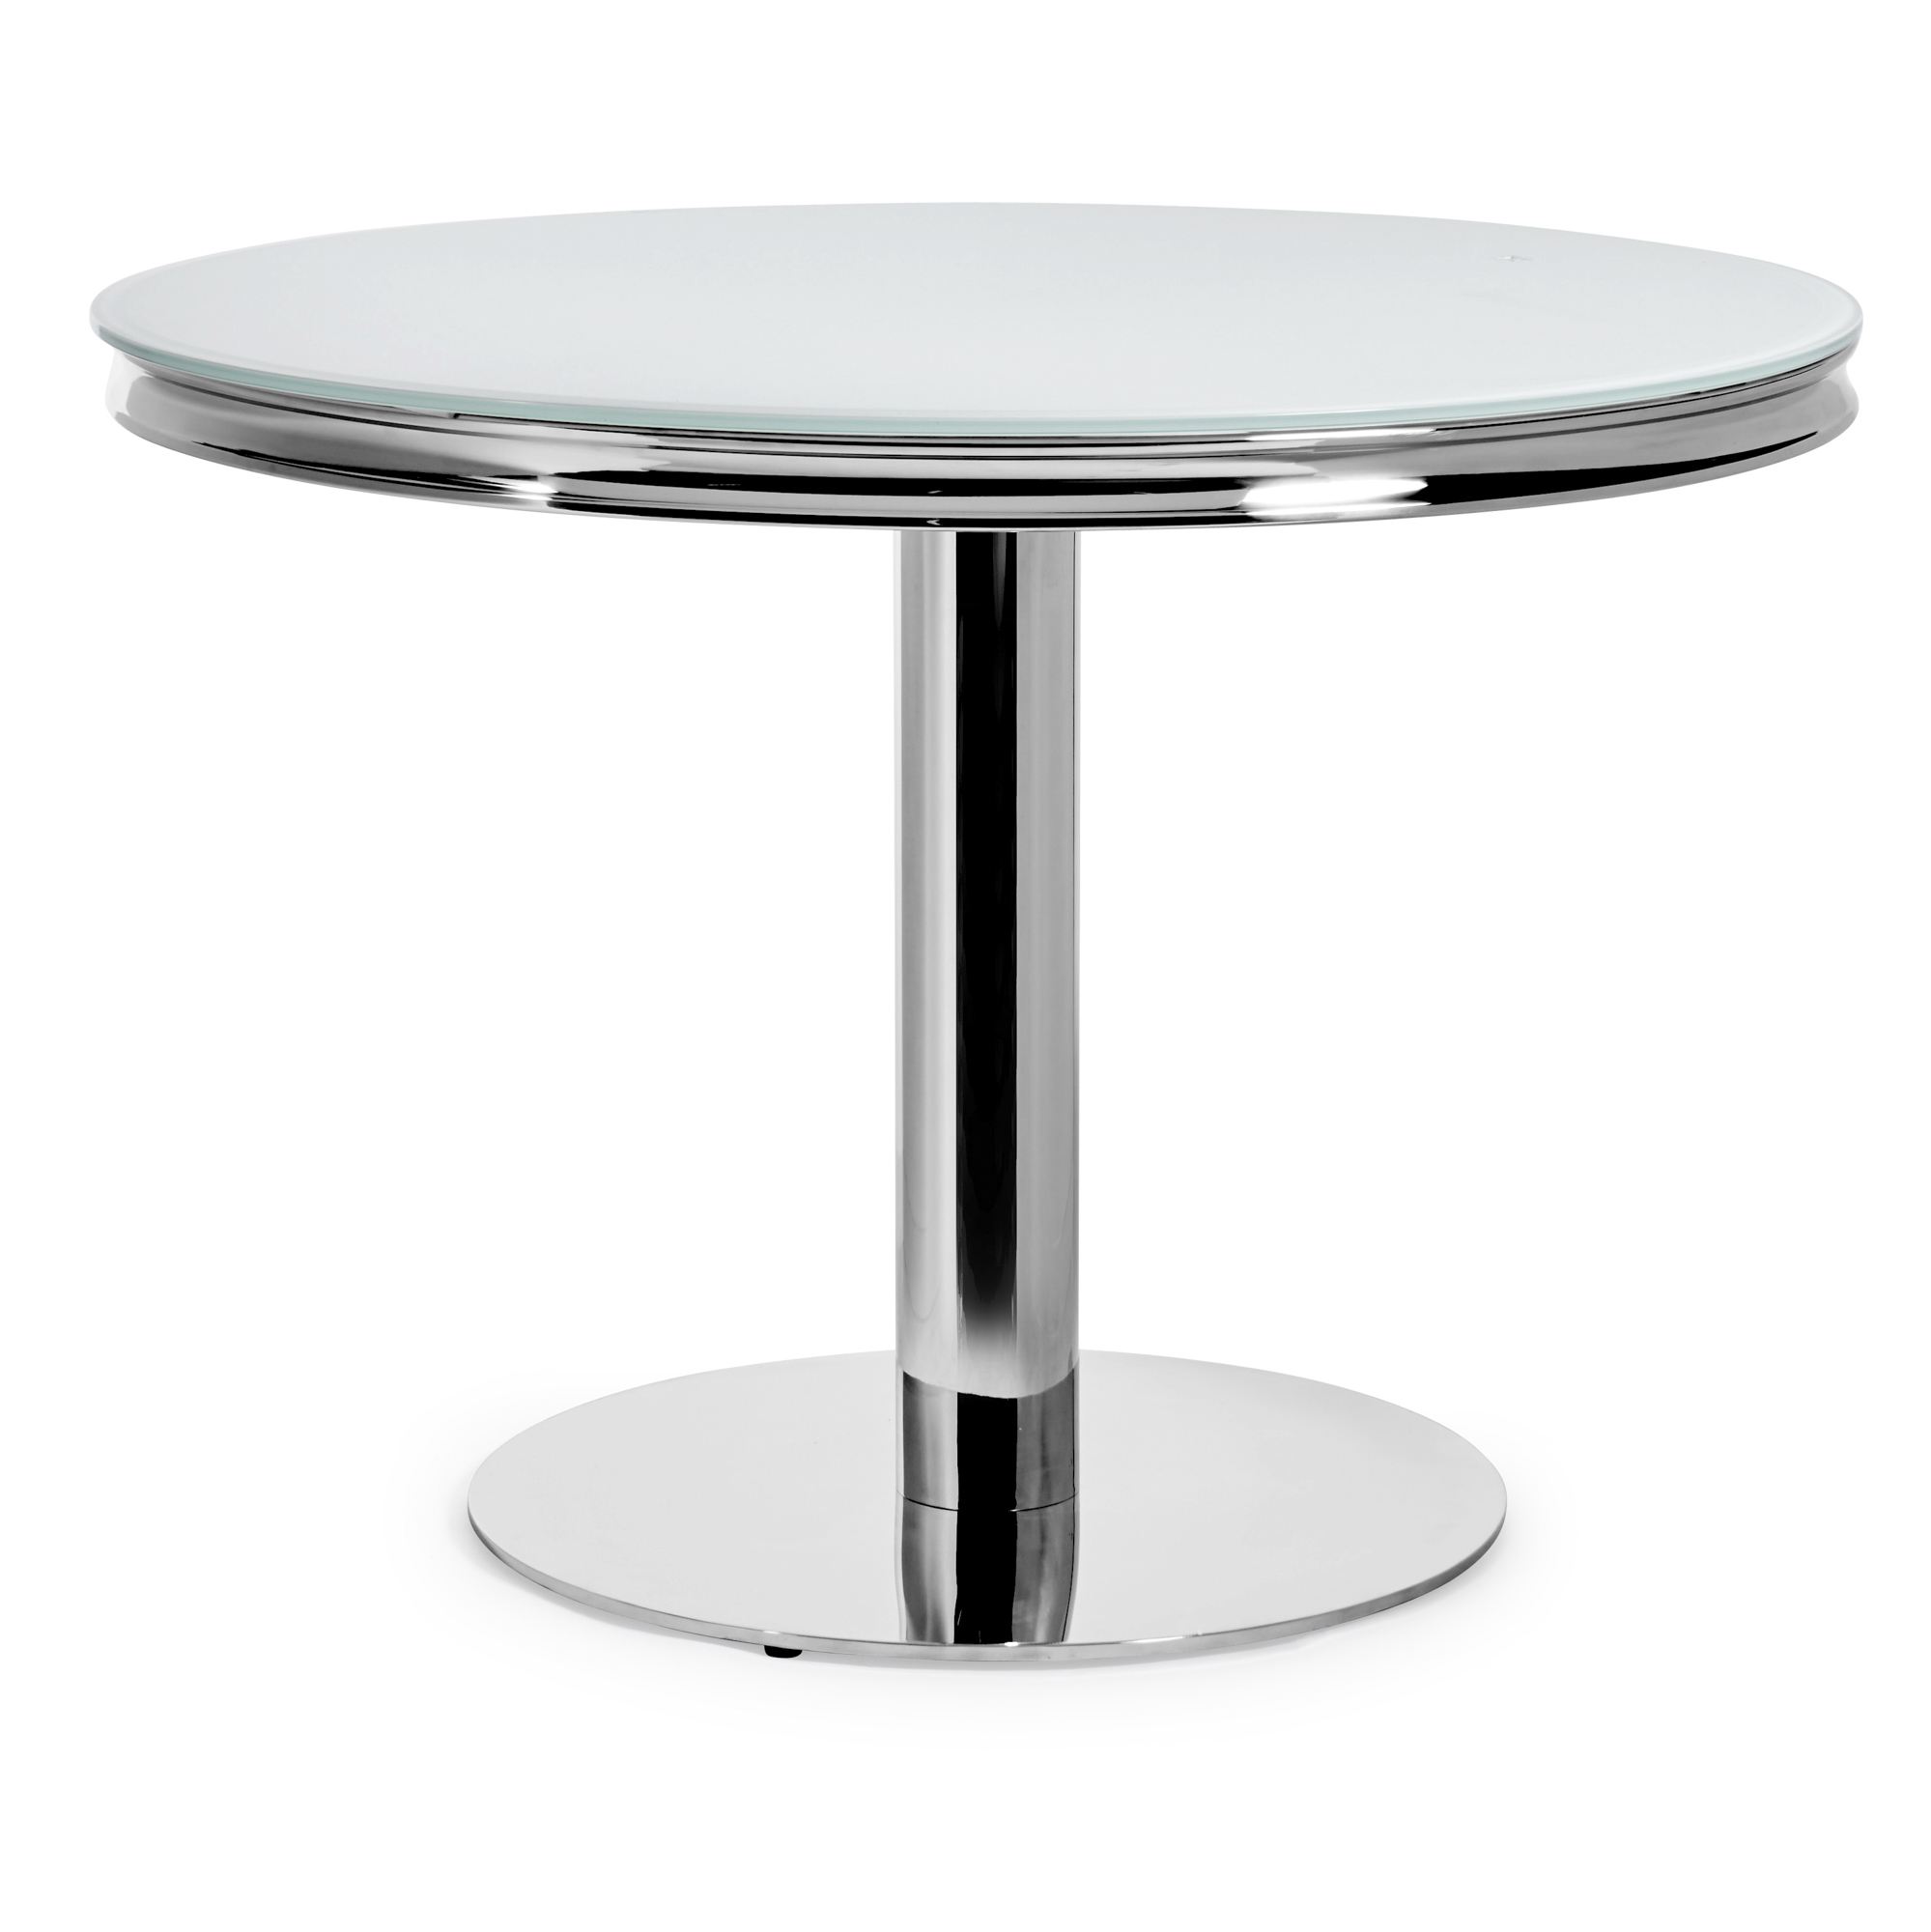 Small Louis 1.06m Round Dining Table Set – White Glass Table & Chairs Set